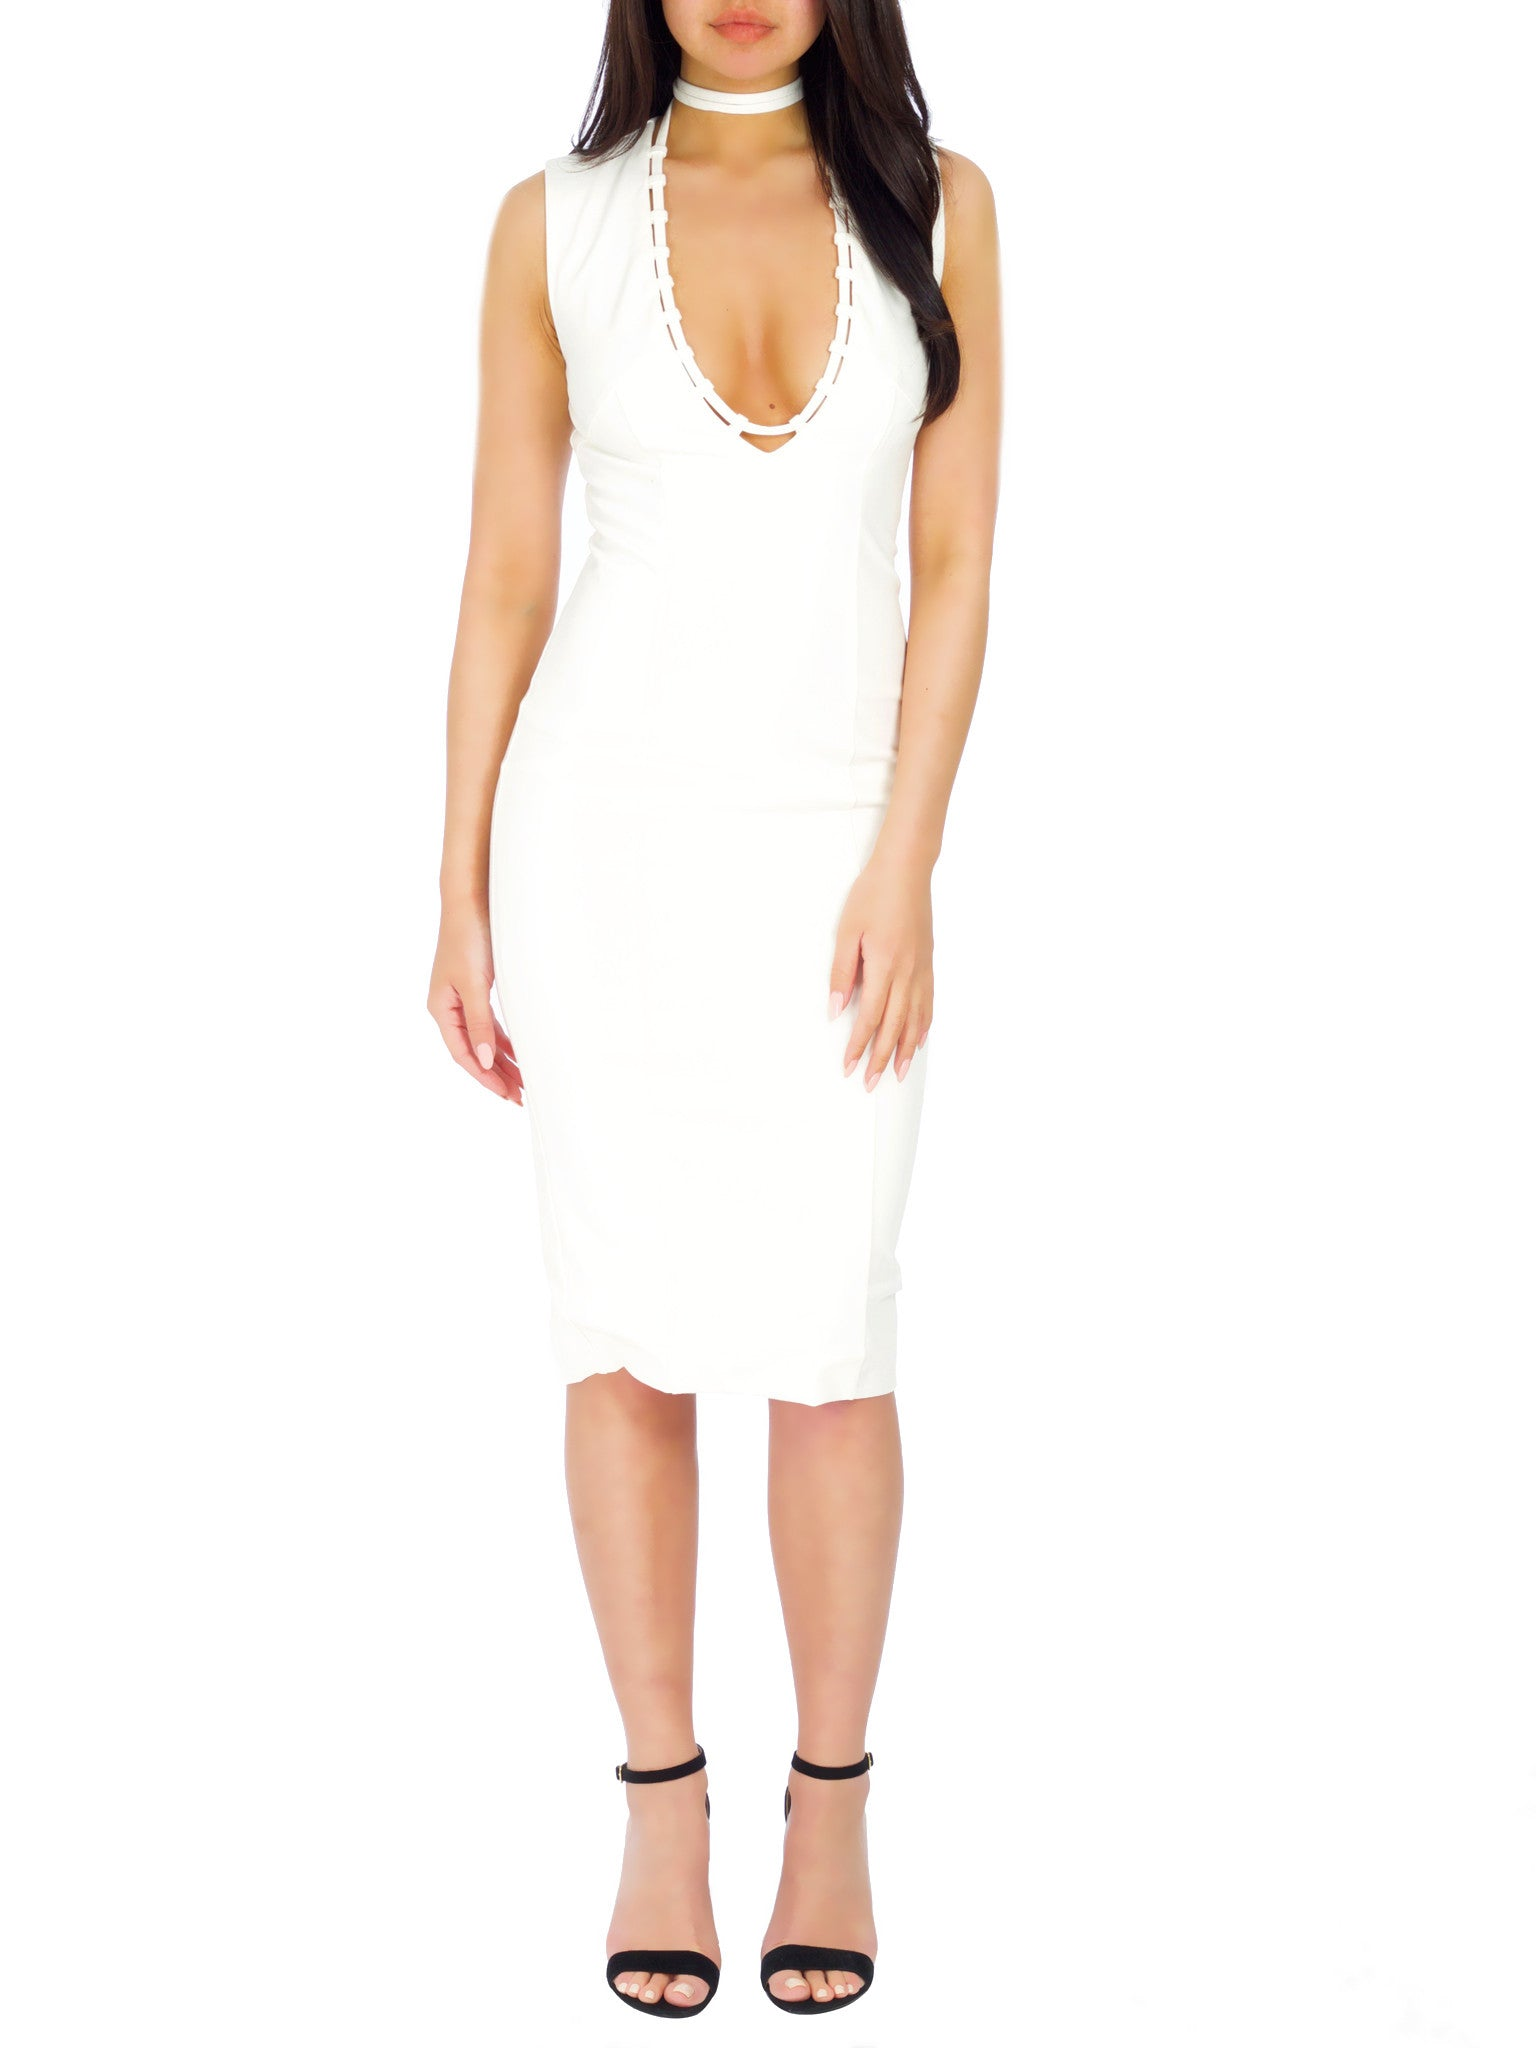 Superstition Dress -White - PRADEGAL